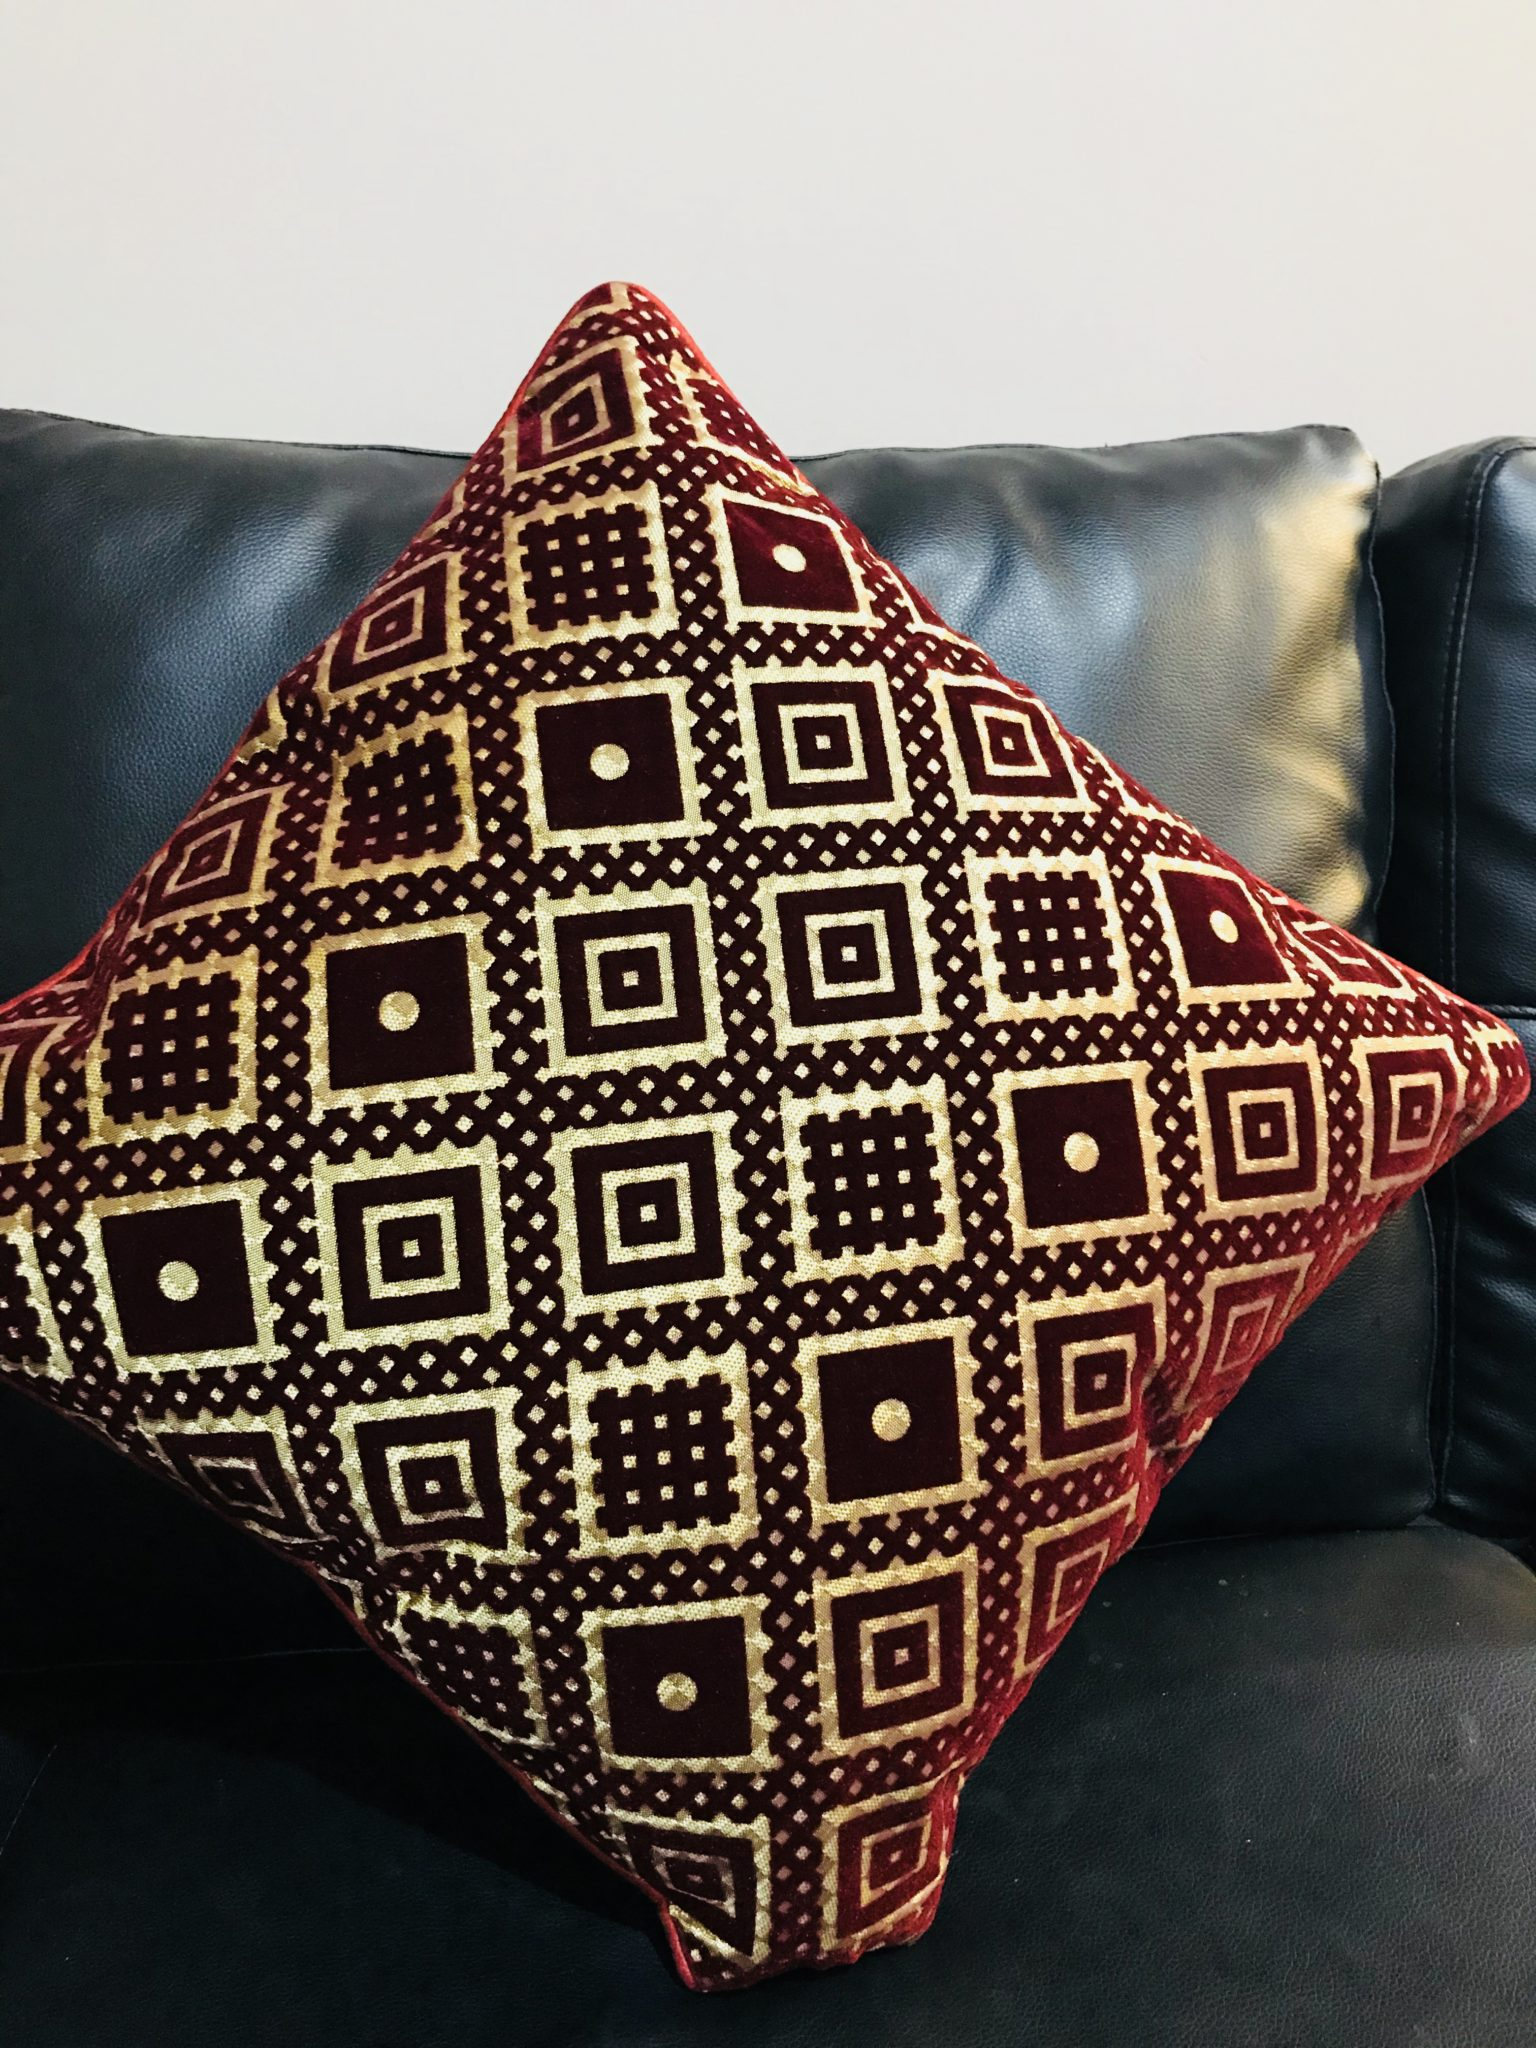 A A Home Decor Australia Cushion Cover Buy Bedsheets Curtains Online